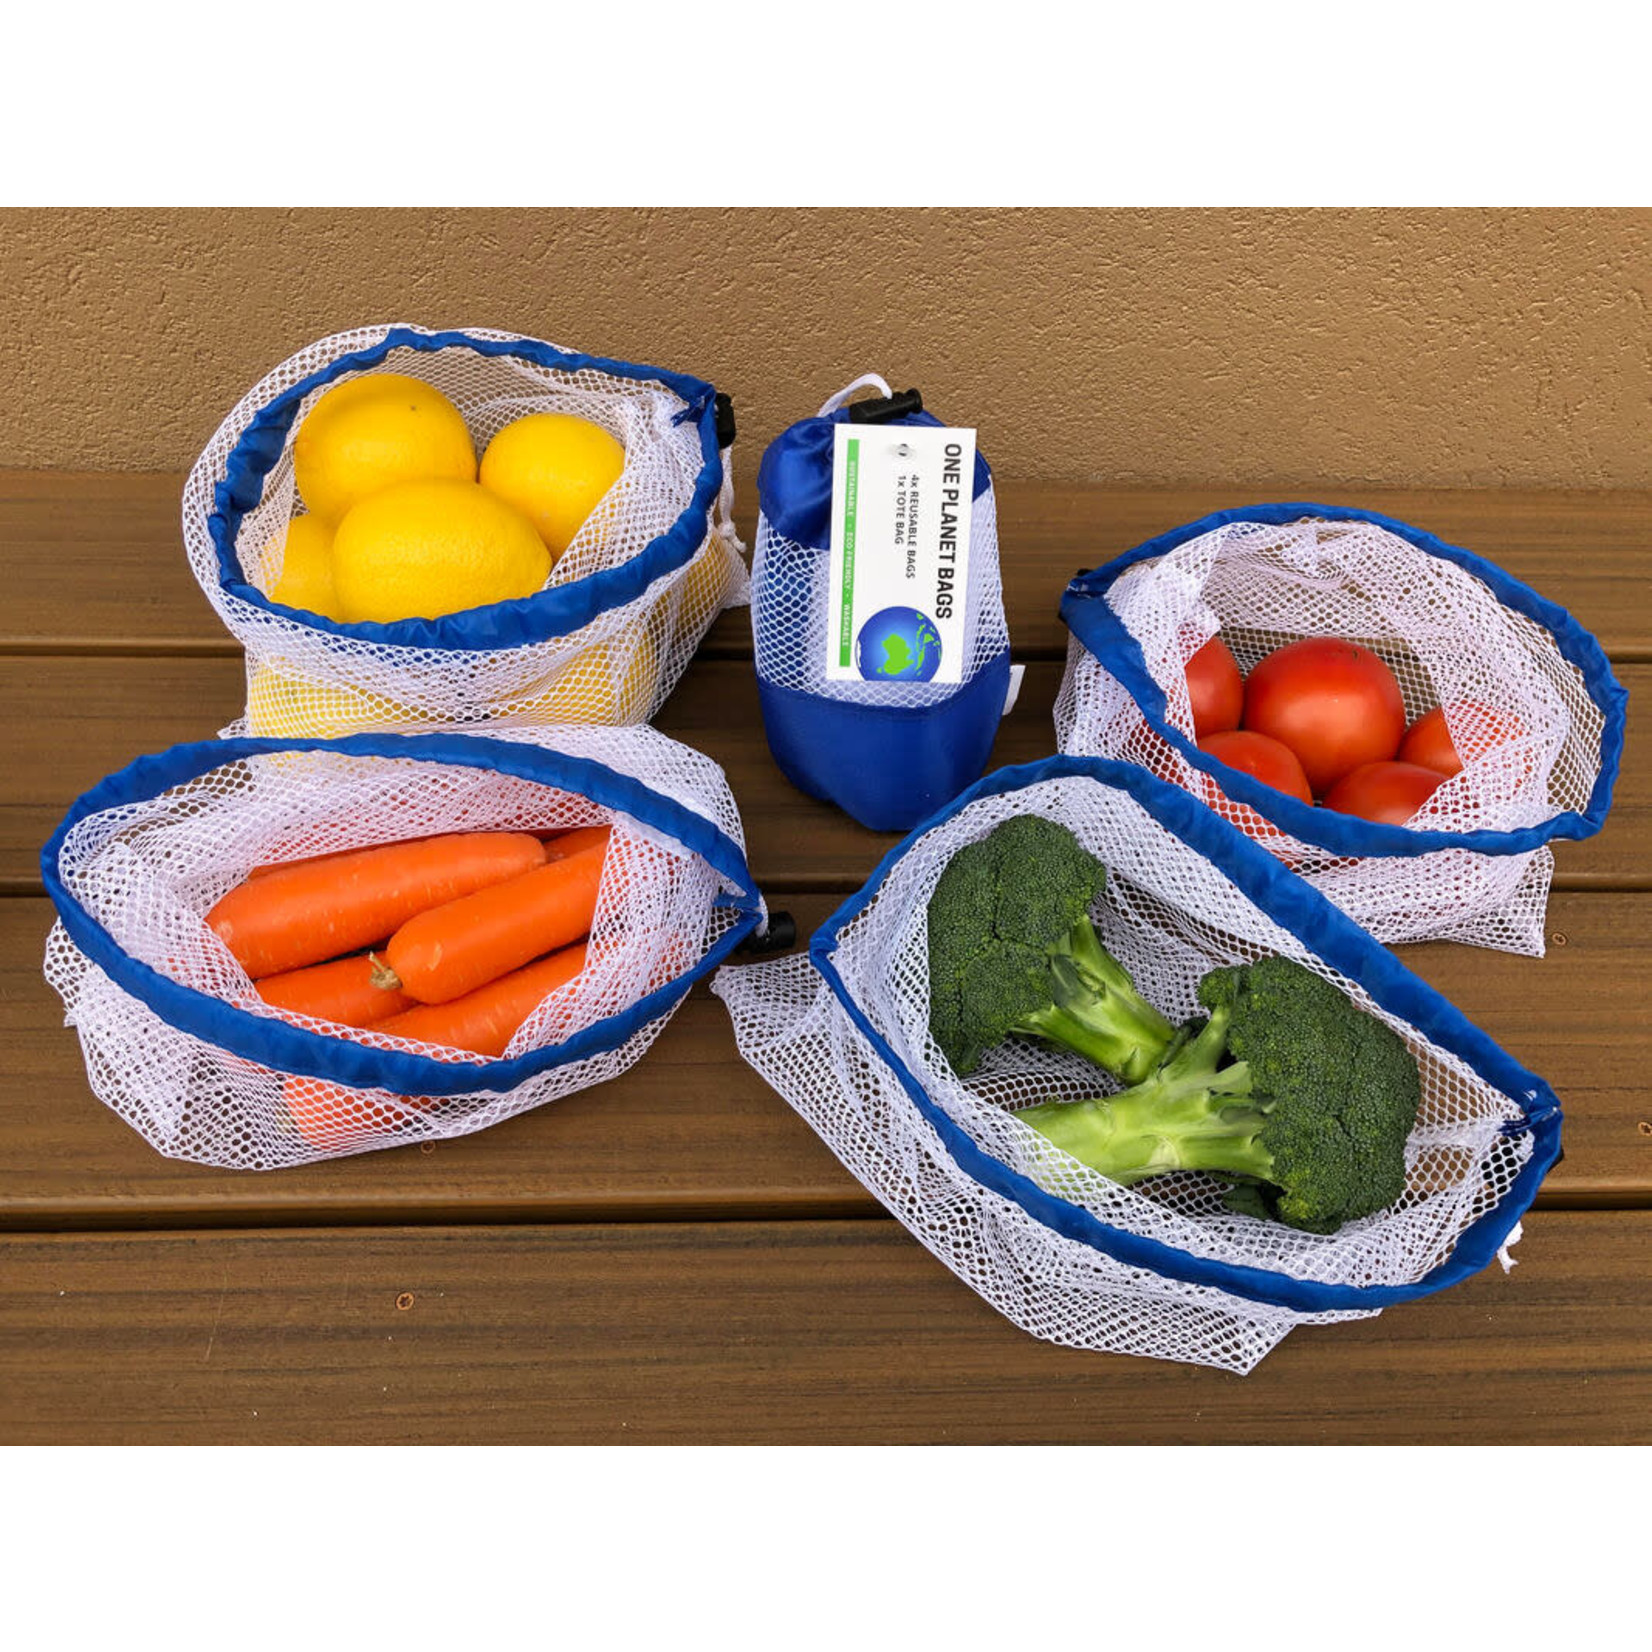 One Planet Bags One Planet Bags Produce Bags